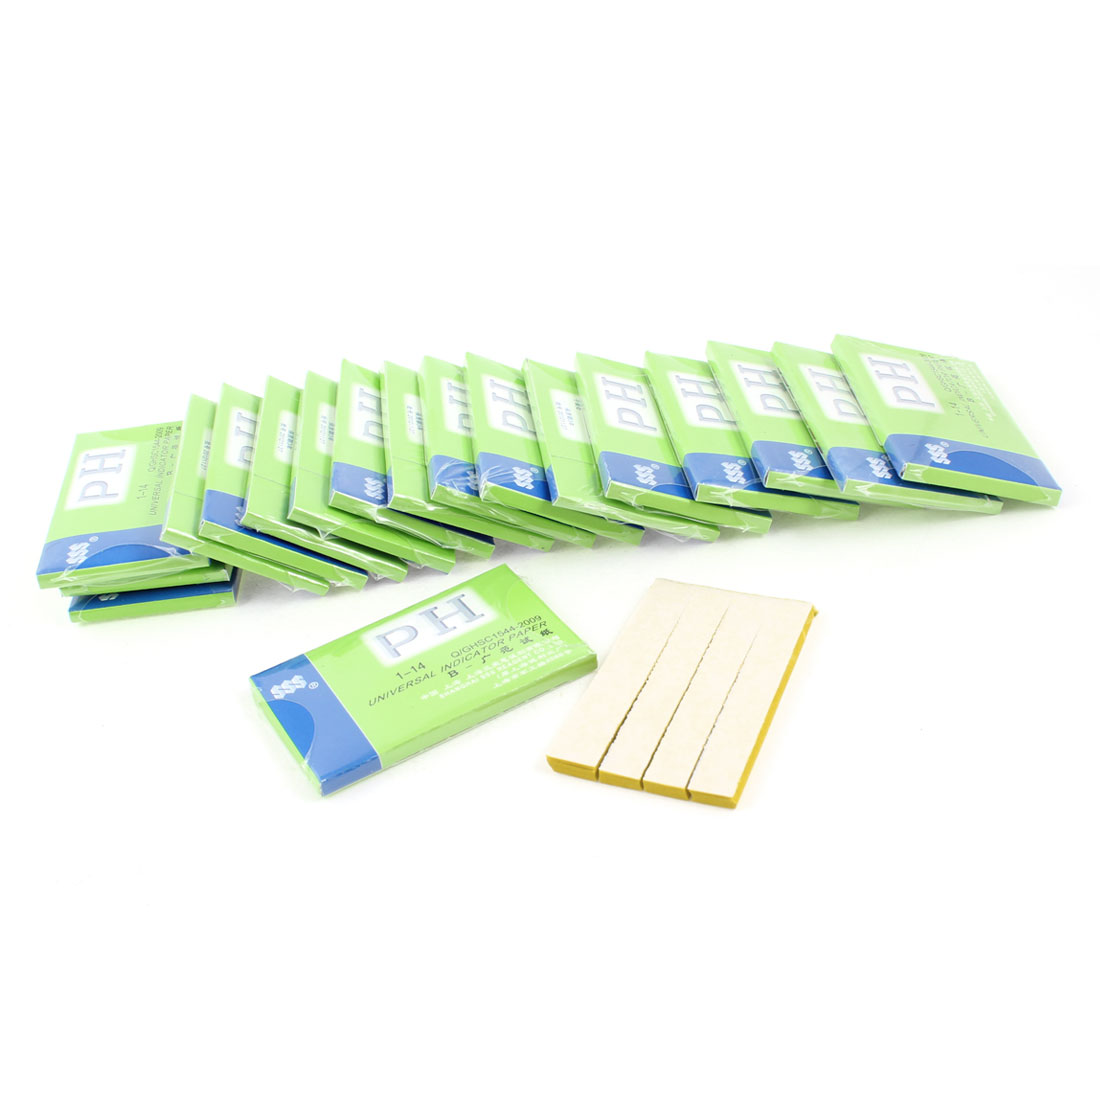 59mm x 8mm Yellow Testing PH TEST 80 Paper Strip Complete KIT 1-14 Scale 20 Pcs